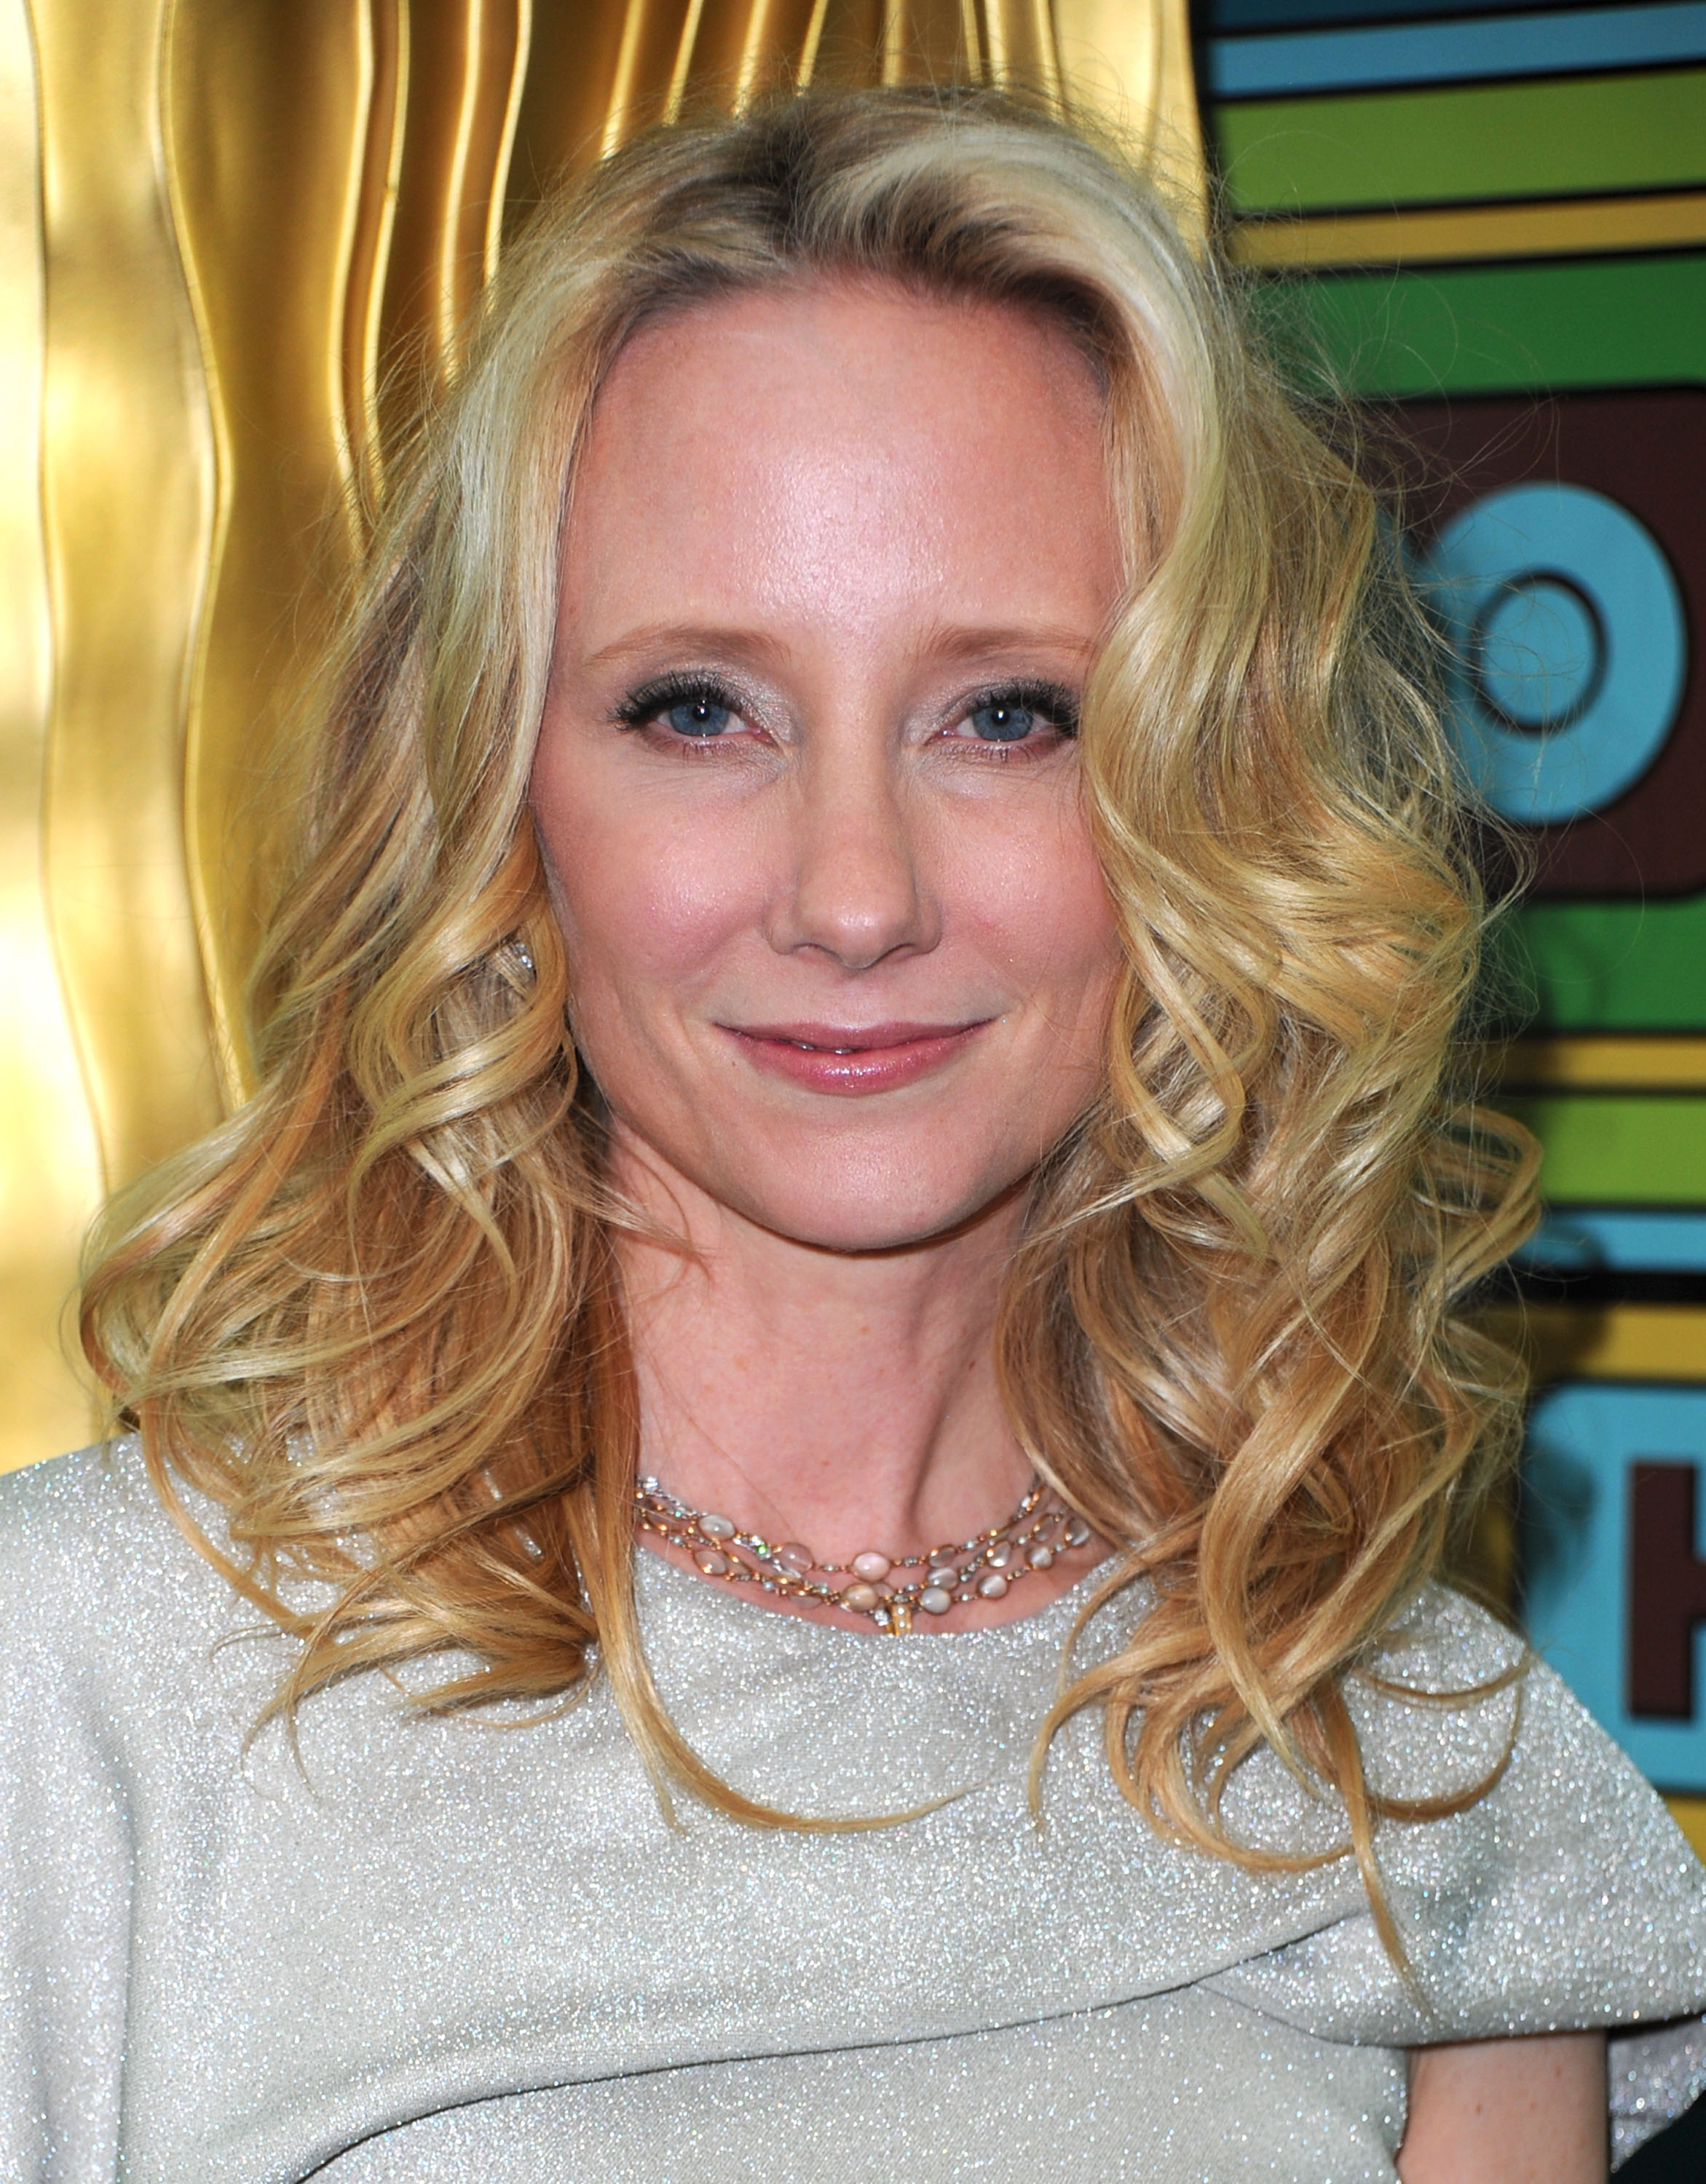 Rico Alaniz Wallpapers ANNE HECHE FREE Wallpapers Background images hippowallpapers com